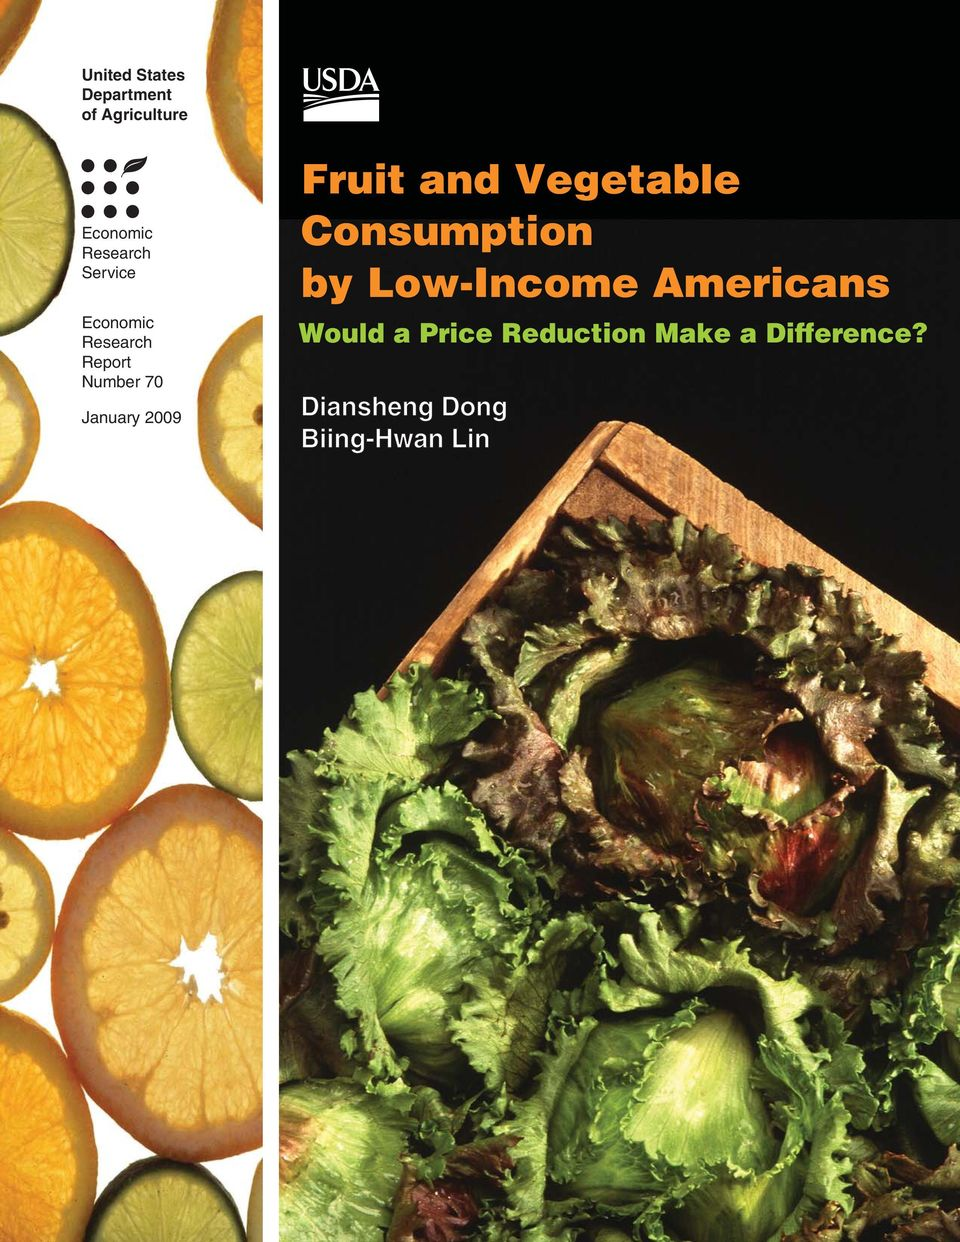 Fruit and Vegetable Consumption by Low-Income Americans